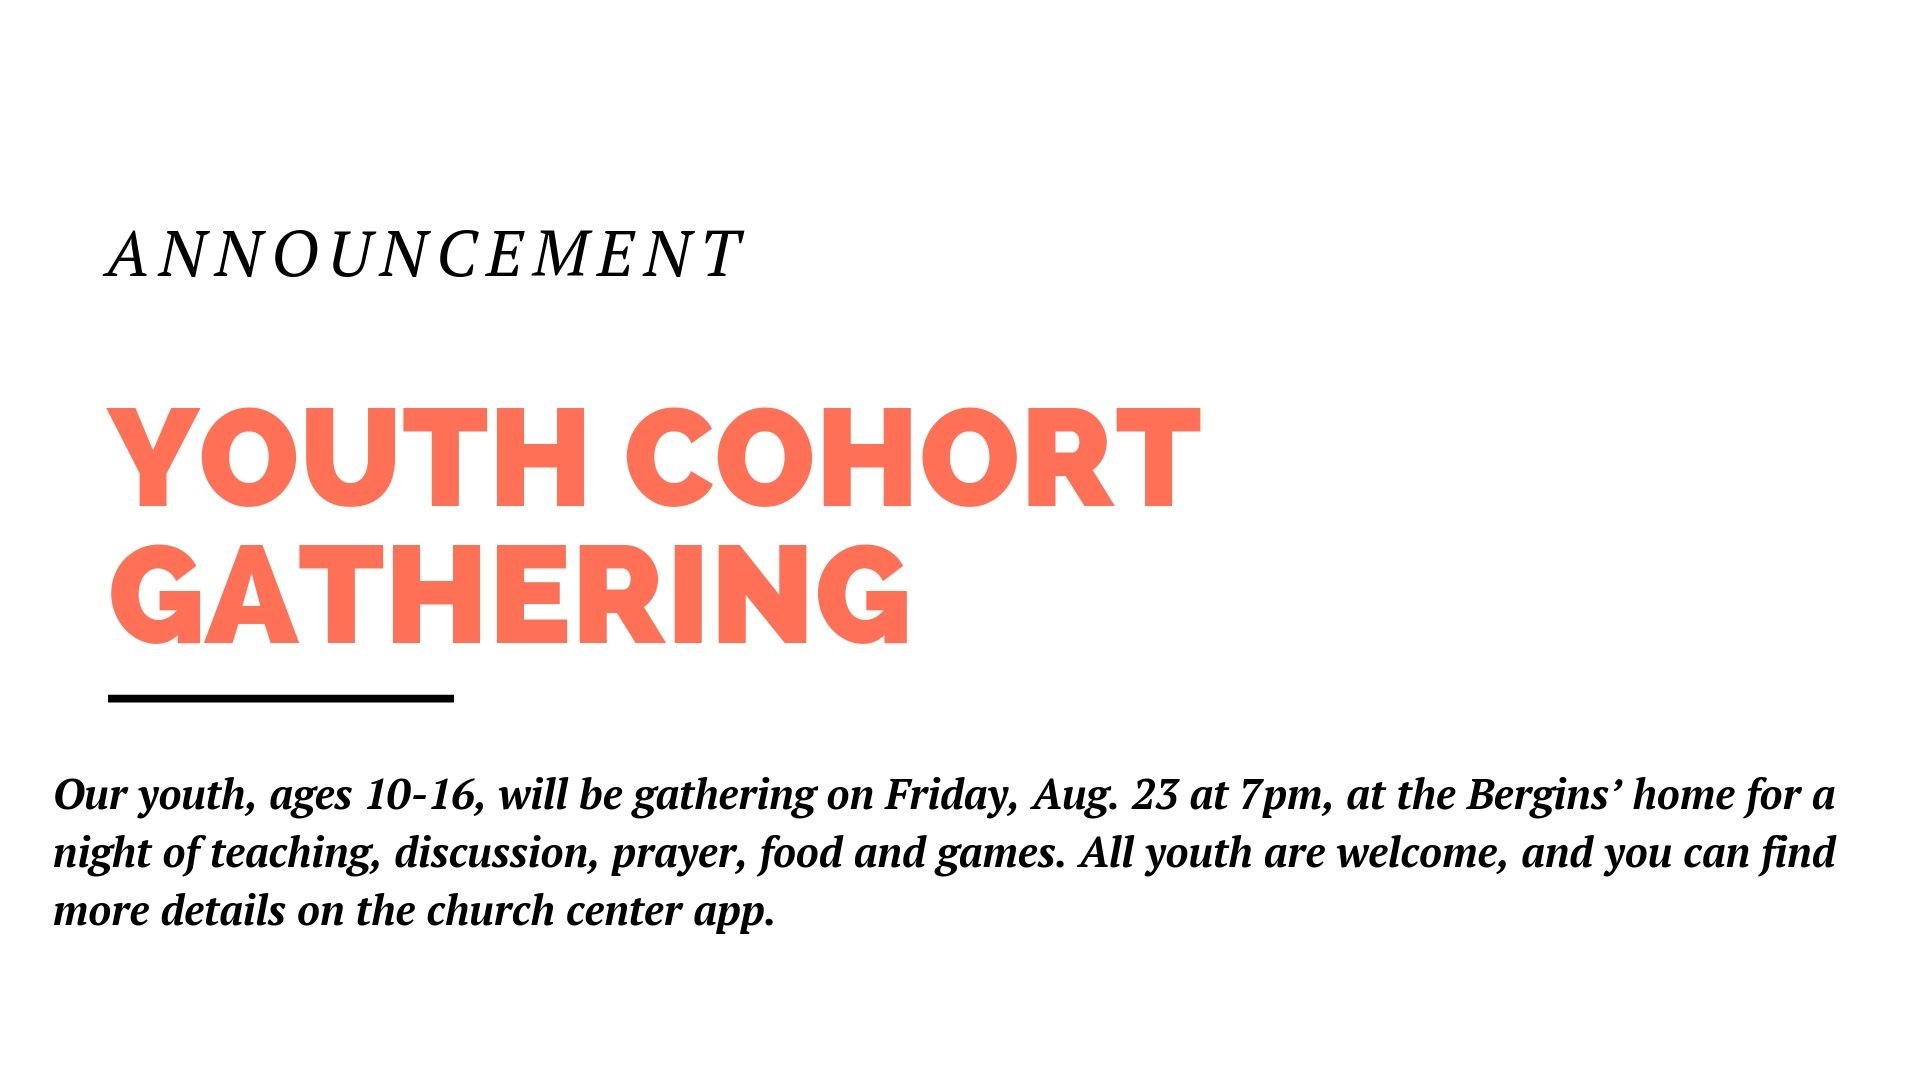 Our youth, ages 10-16, will be gathering on Friday, Aug. 23 at 7pm, at the Bergins' home for a night of teaching, discussion, prayer, food and games. All youth are welcome, and you can find more details on the church center app.